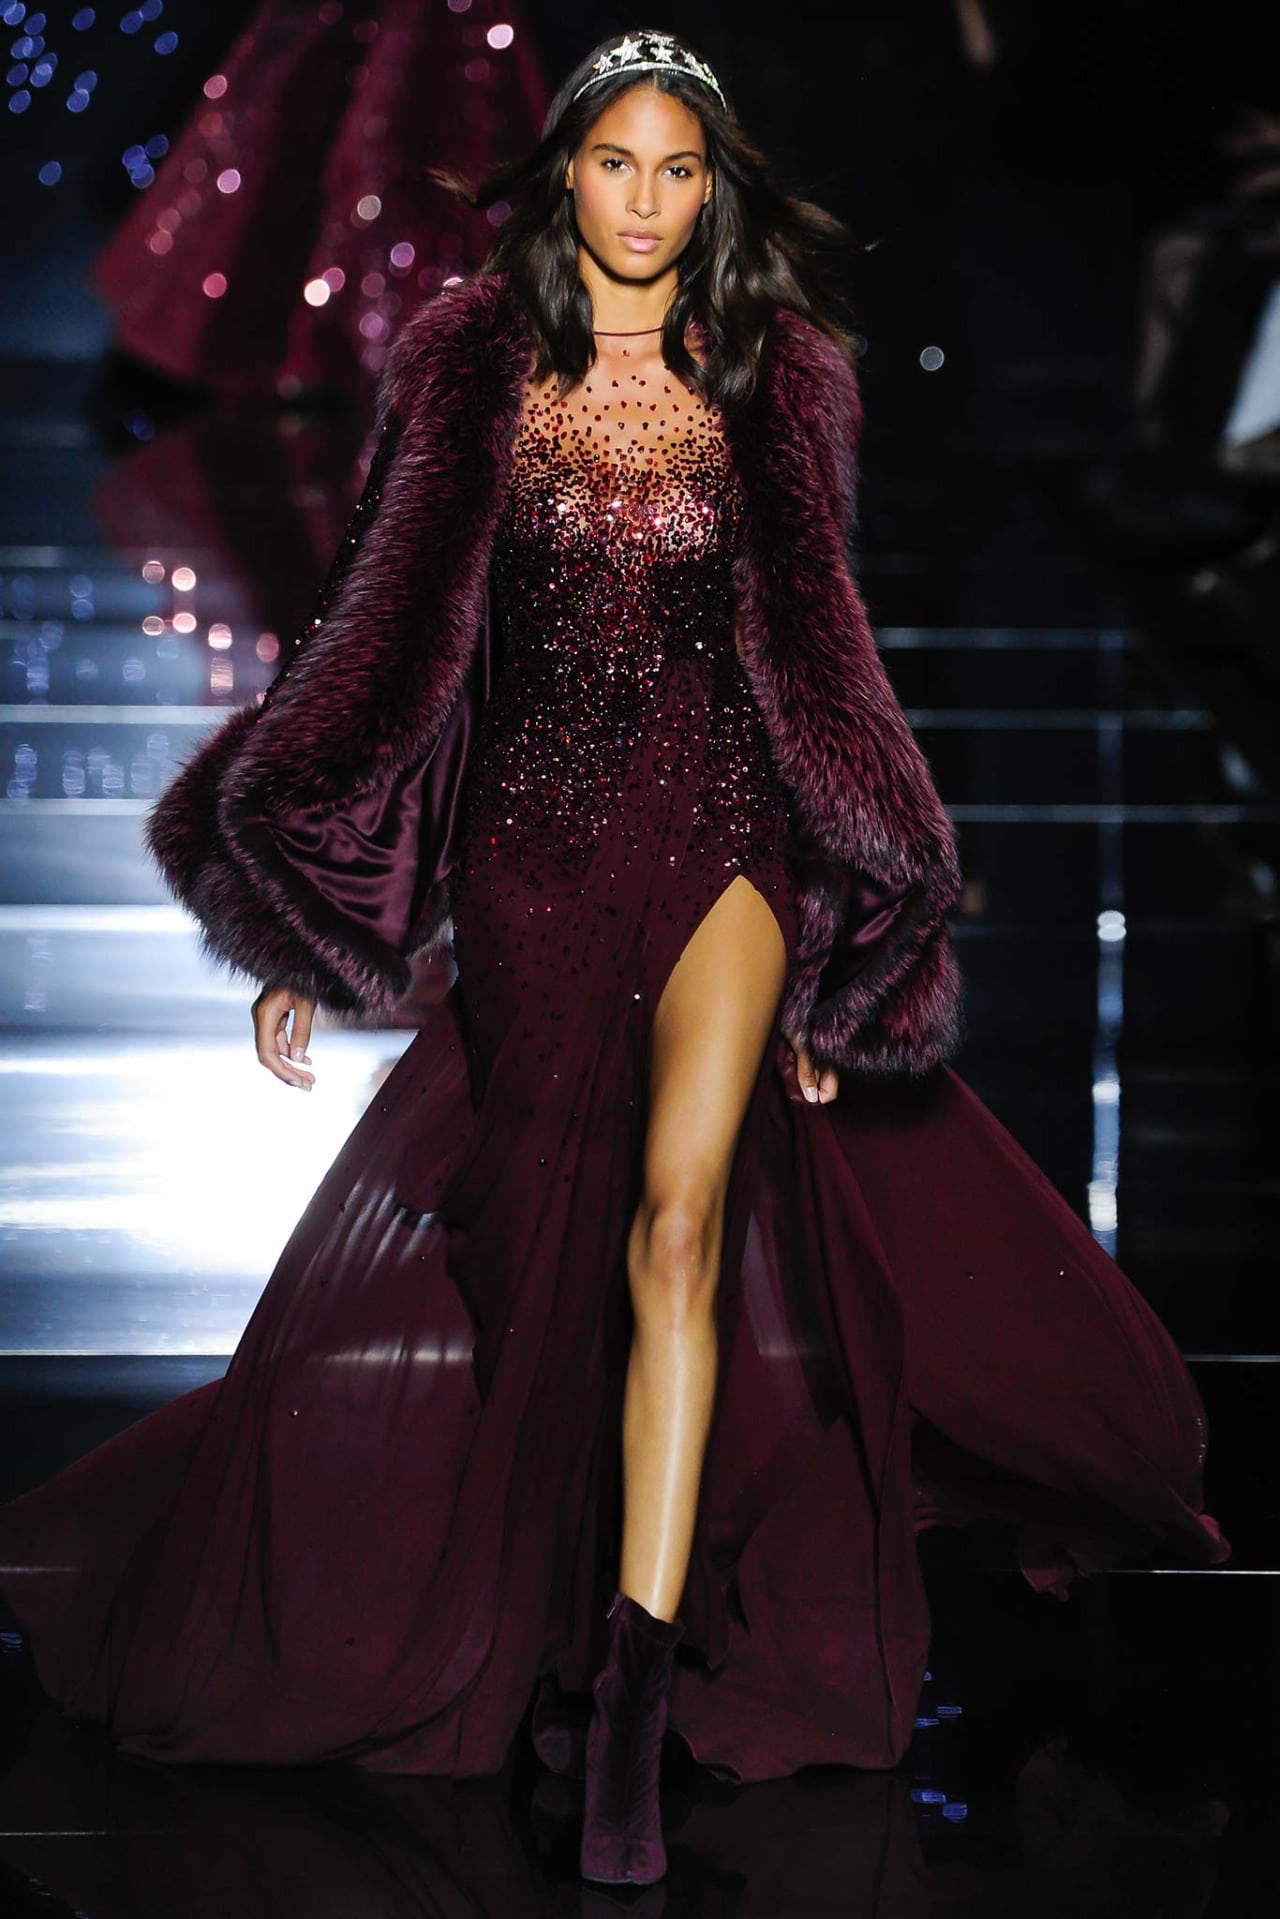 zuhair-murad-fall-2015-collection-9